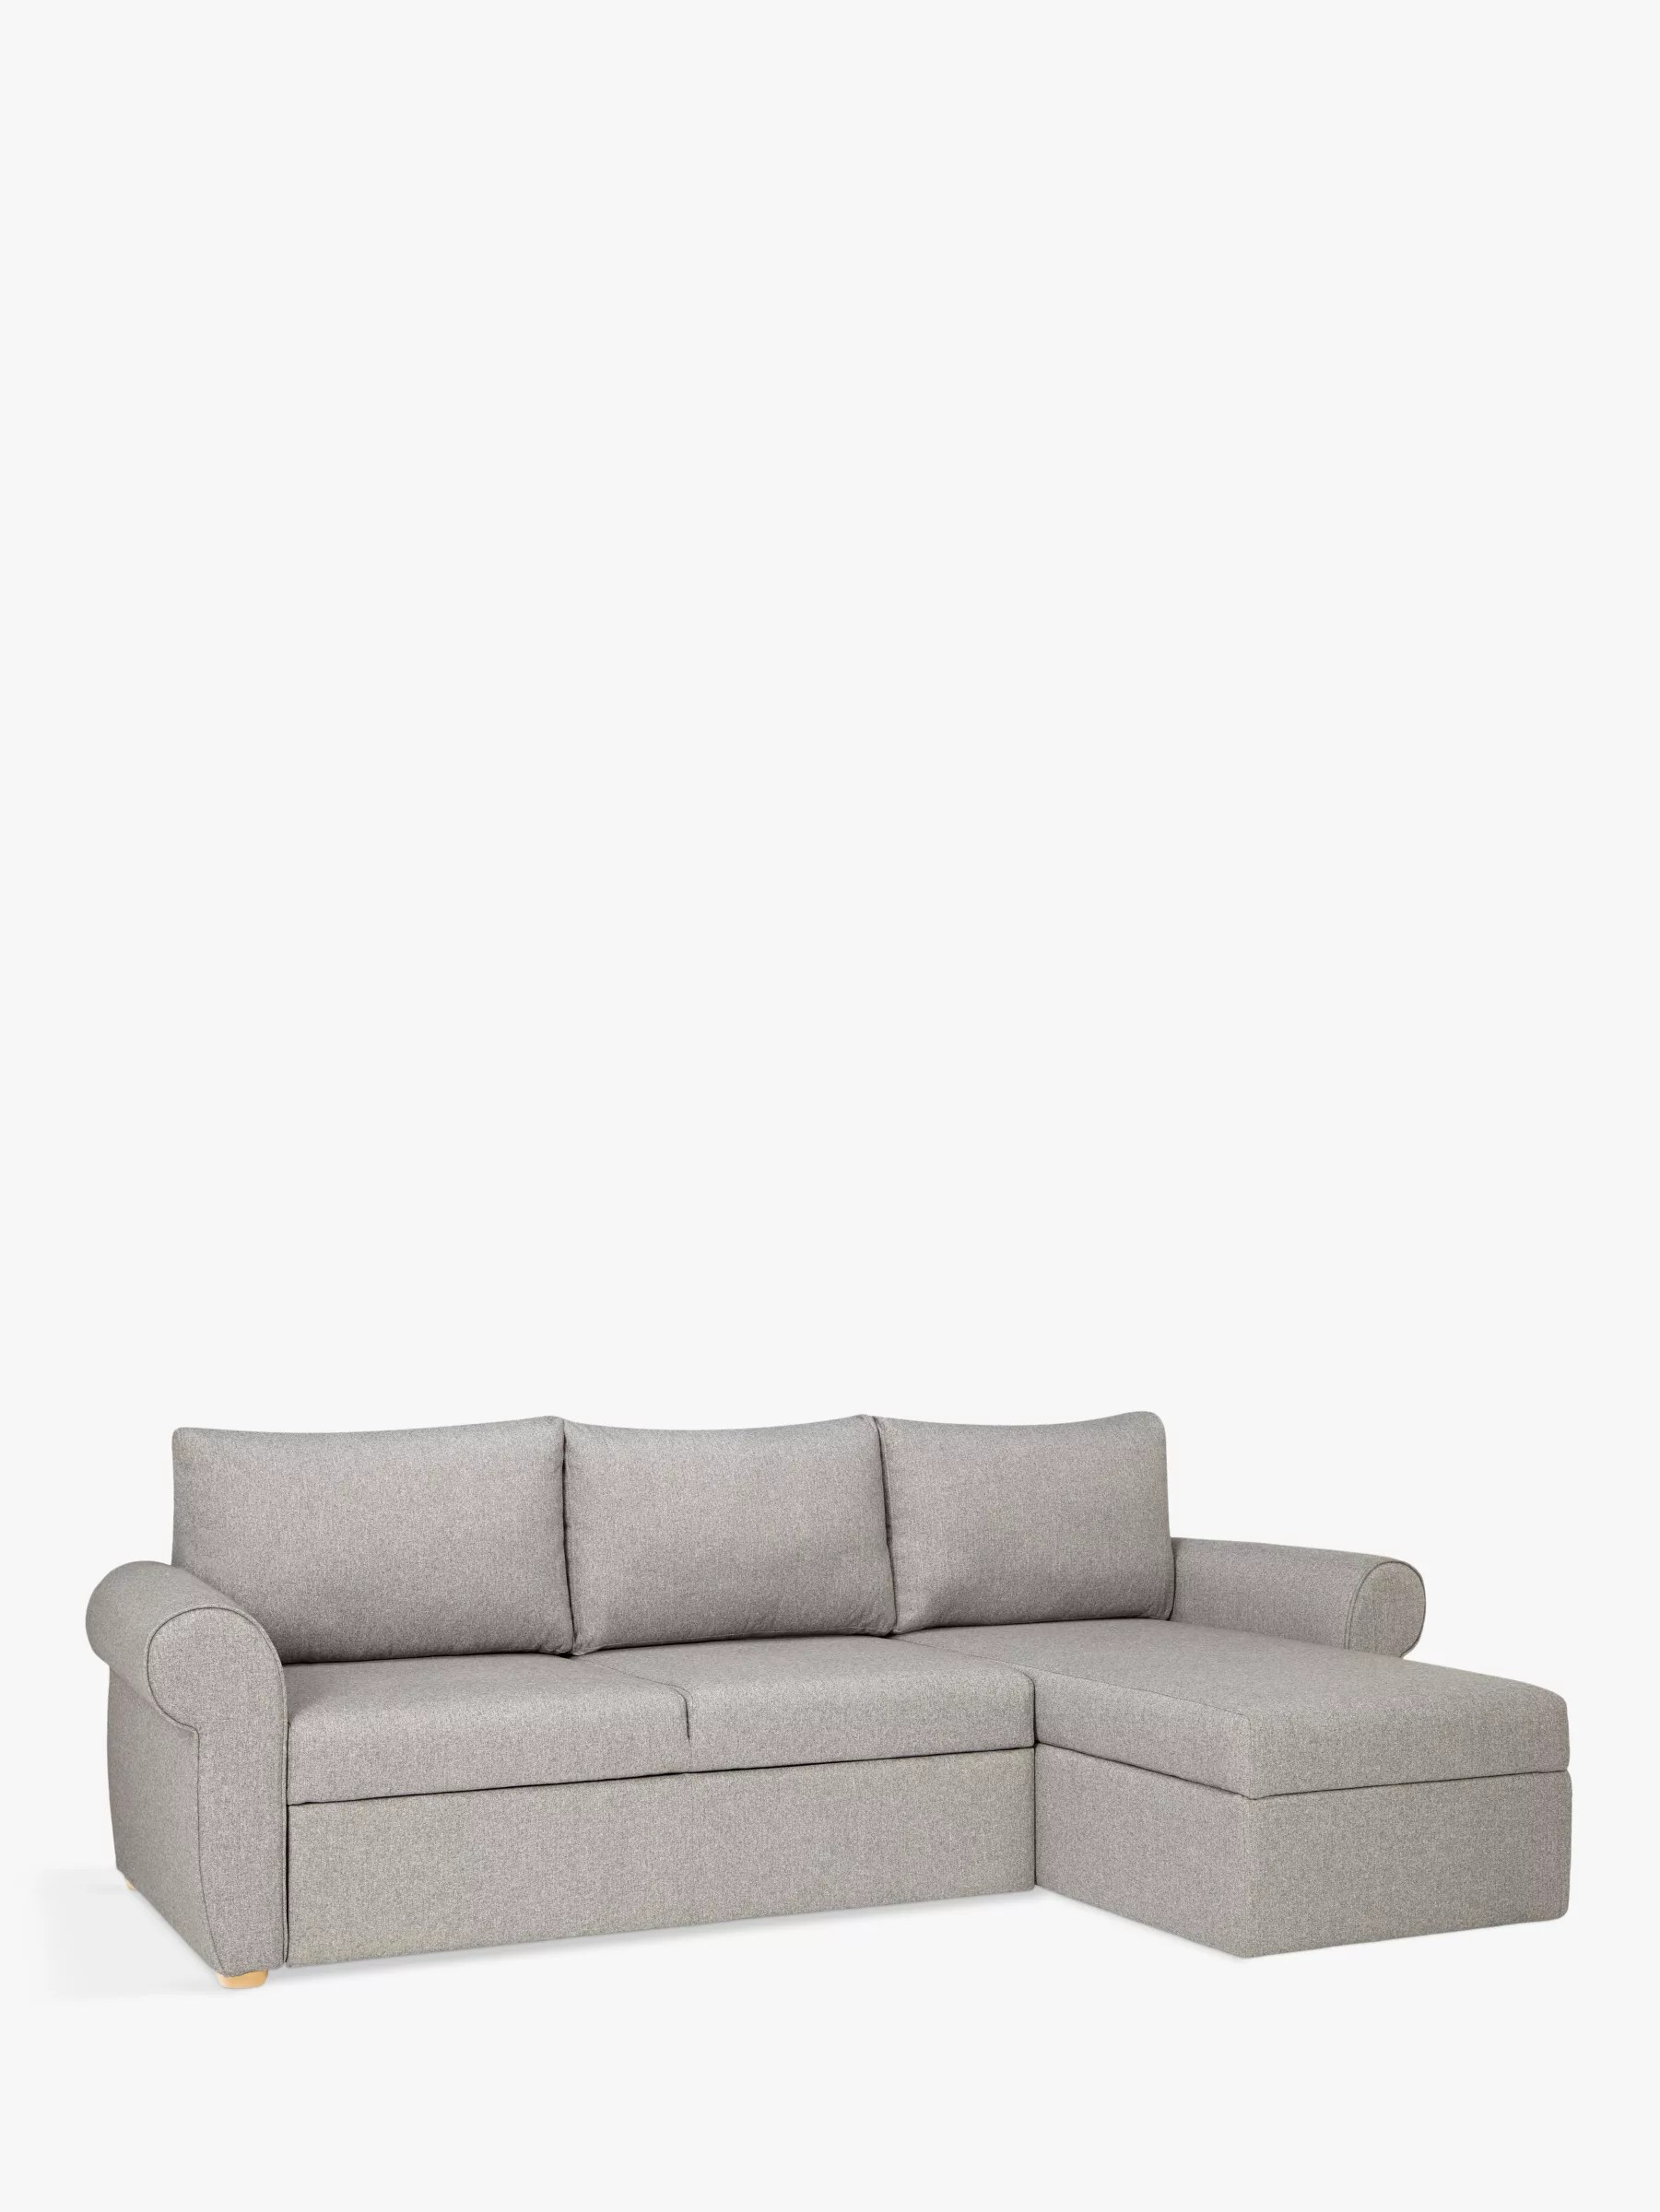 Buy Sofa Bed Online John Lewis Partners Sansa Scroll Arm Sofa Bed